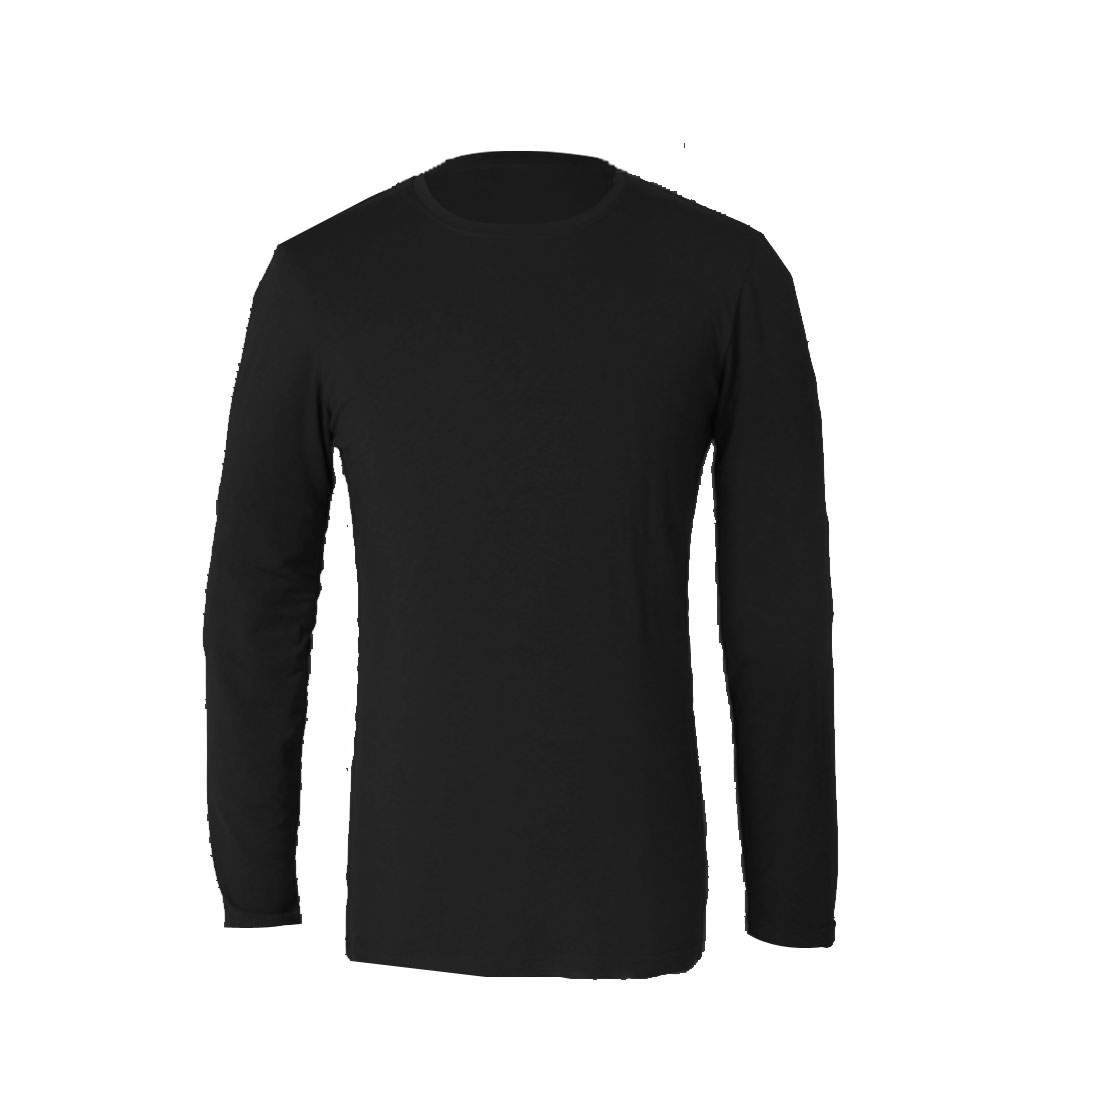 Mens Round Neck Long Sleeve Simple Design Pure Black Casual Shirt S